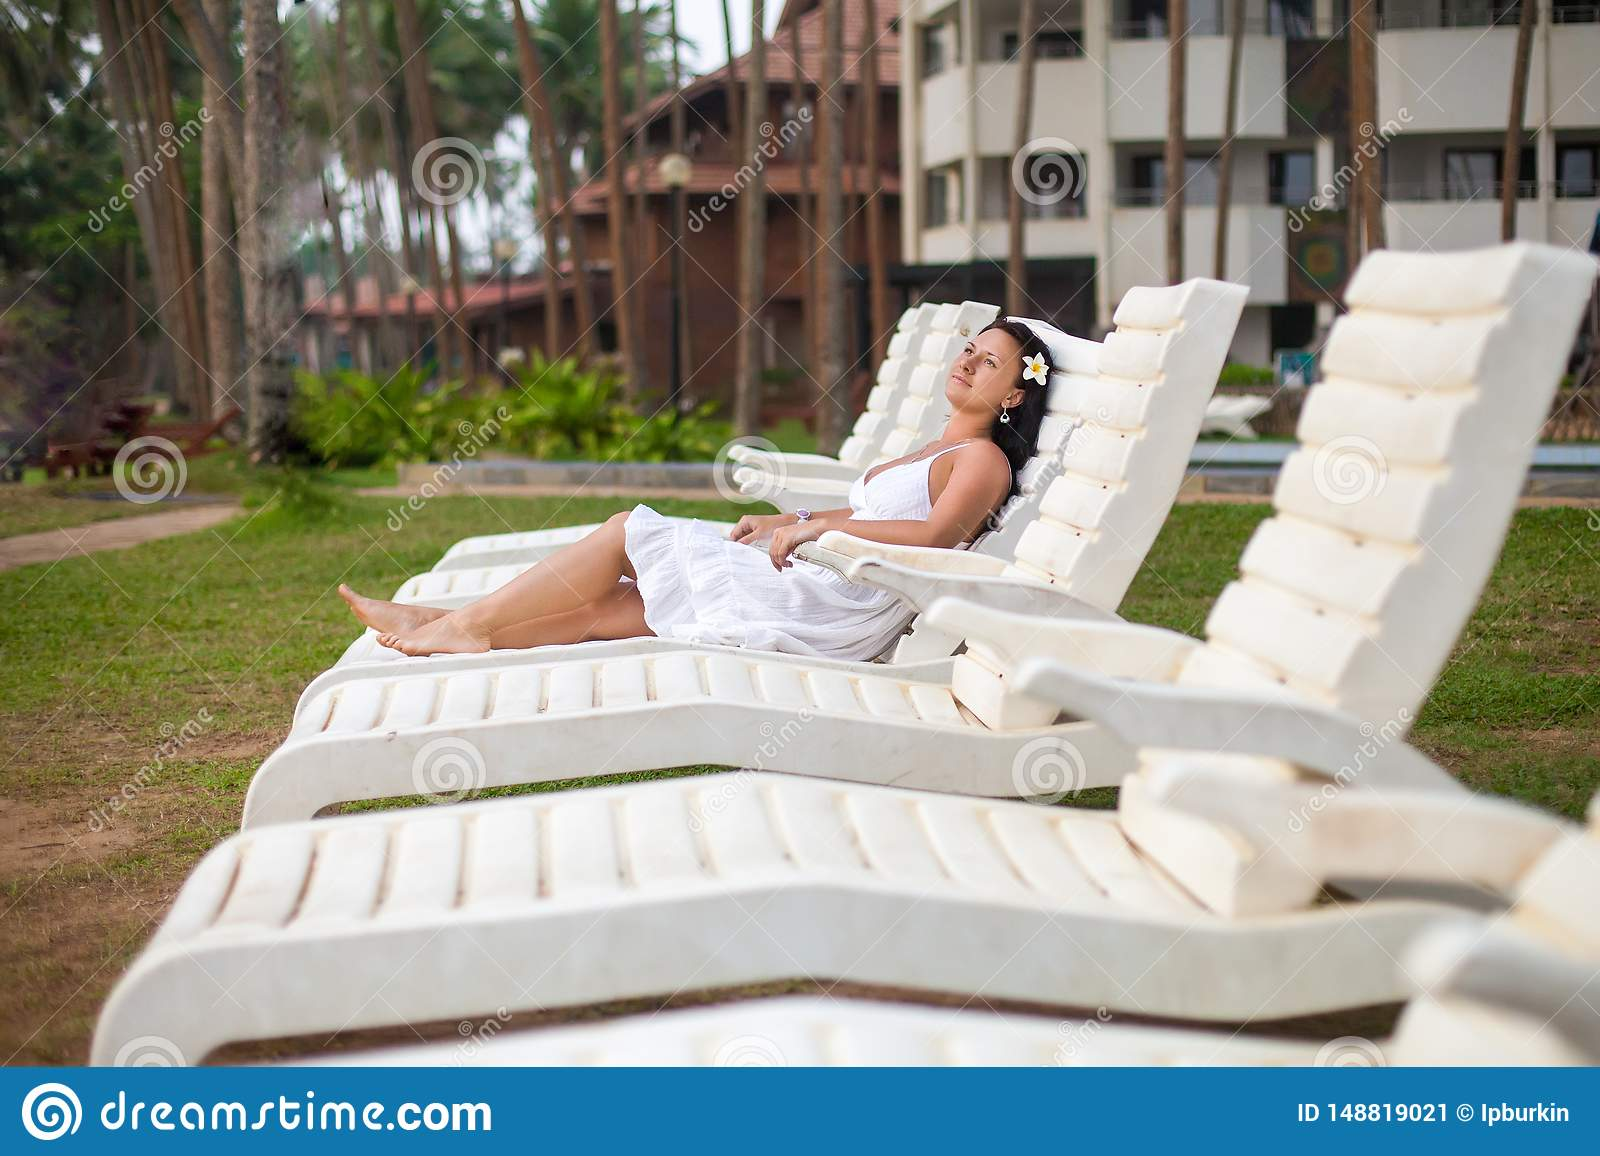 Beautiful young woman in white dress lying on a sun lounger by the sea. travel and Summer concept